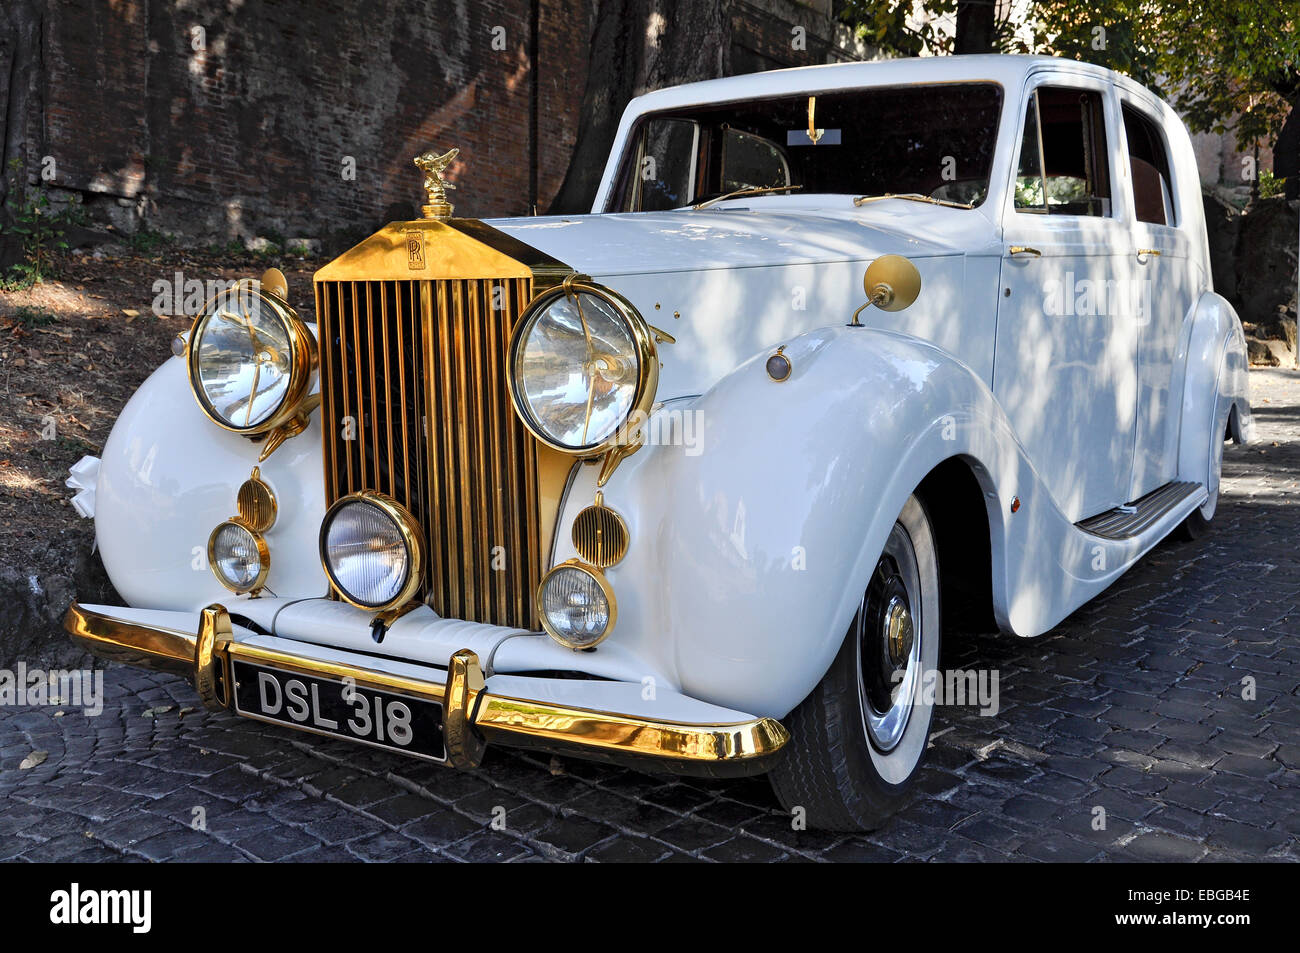 Vintage rolls royce silver wraith pullman limousine built from 1946 partly gilded rome lazio italy